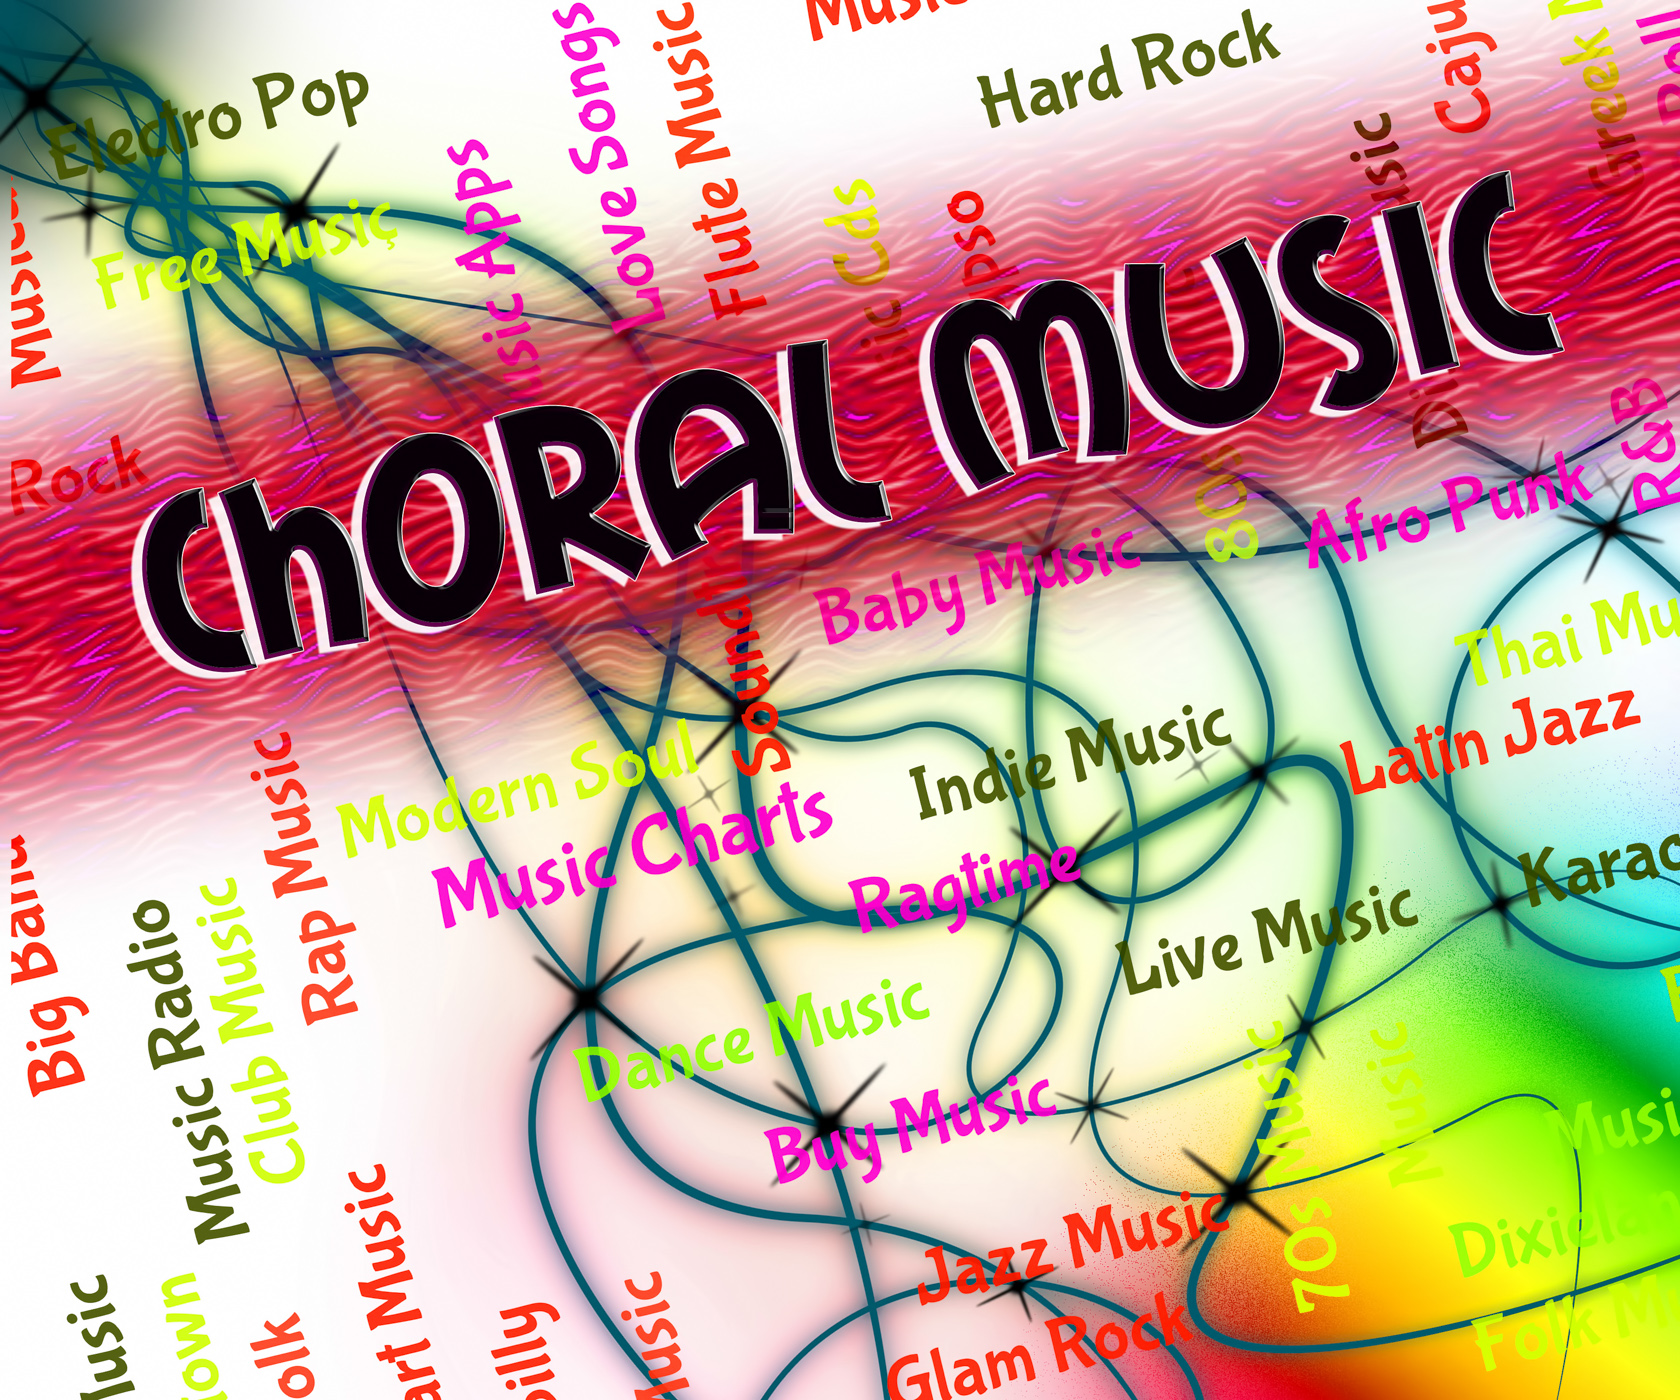 Free photo: Choral Music Indicates Sound Track And Audio - Sound